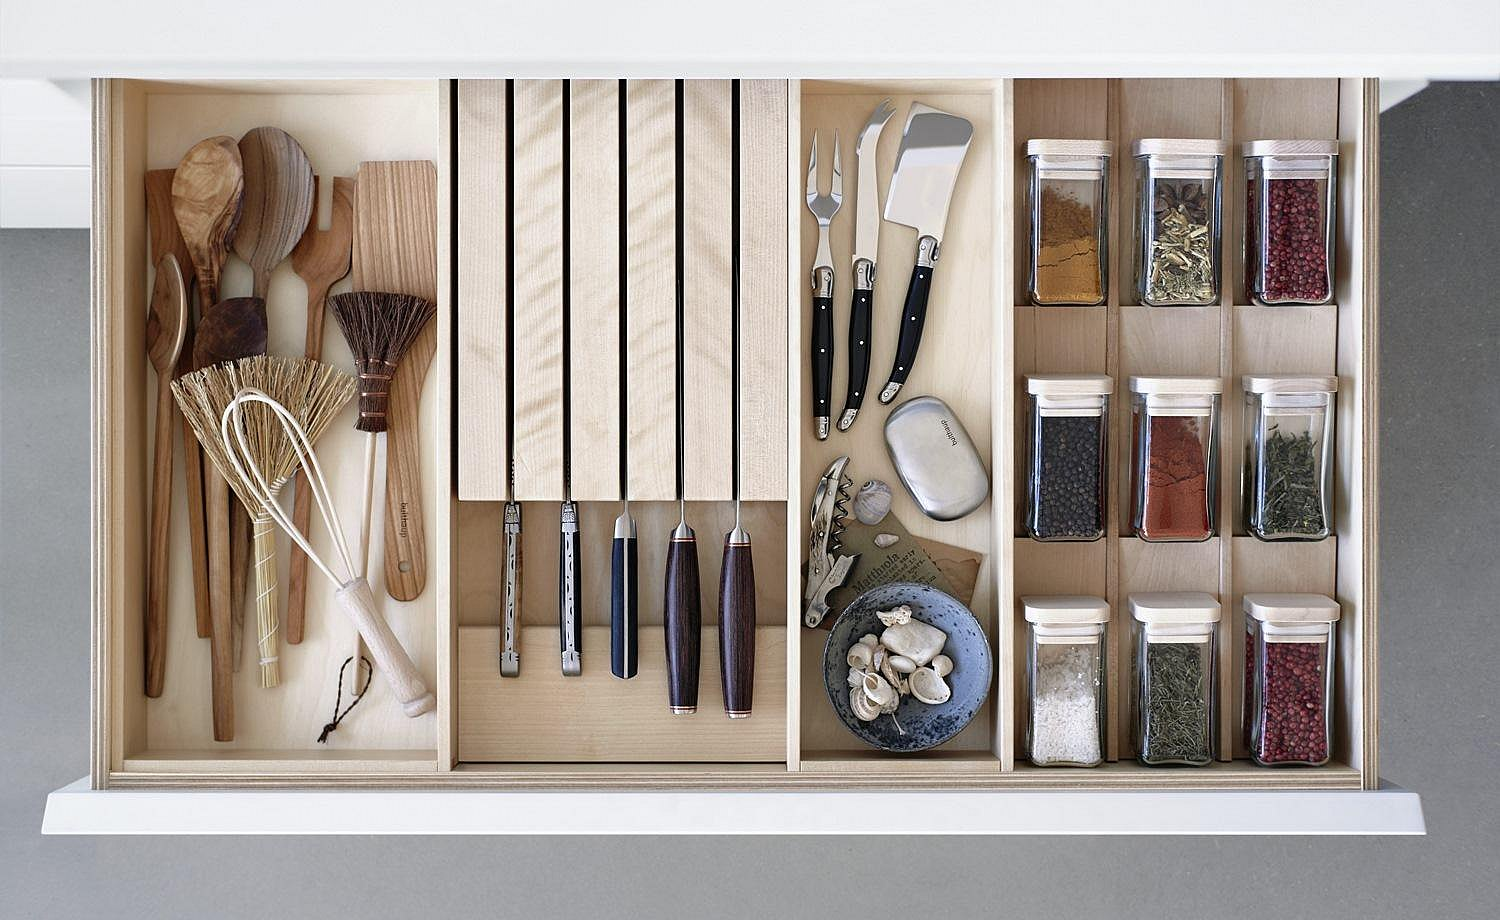 All kitchen hand tools find their place in the drawers' organization system